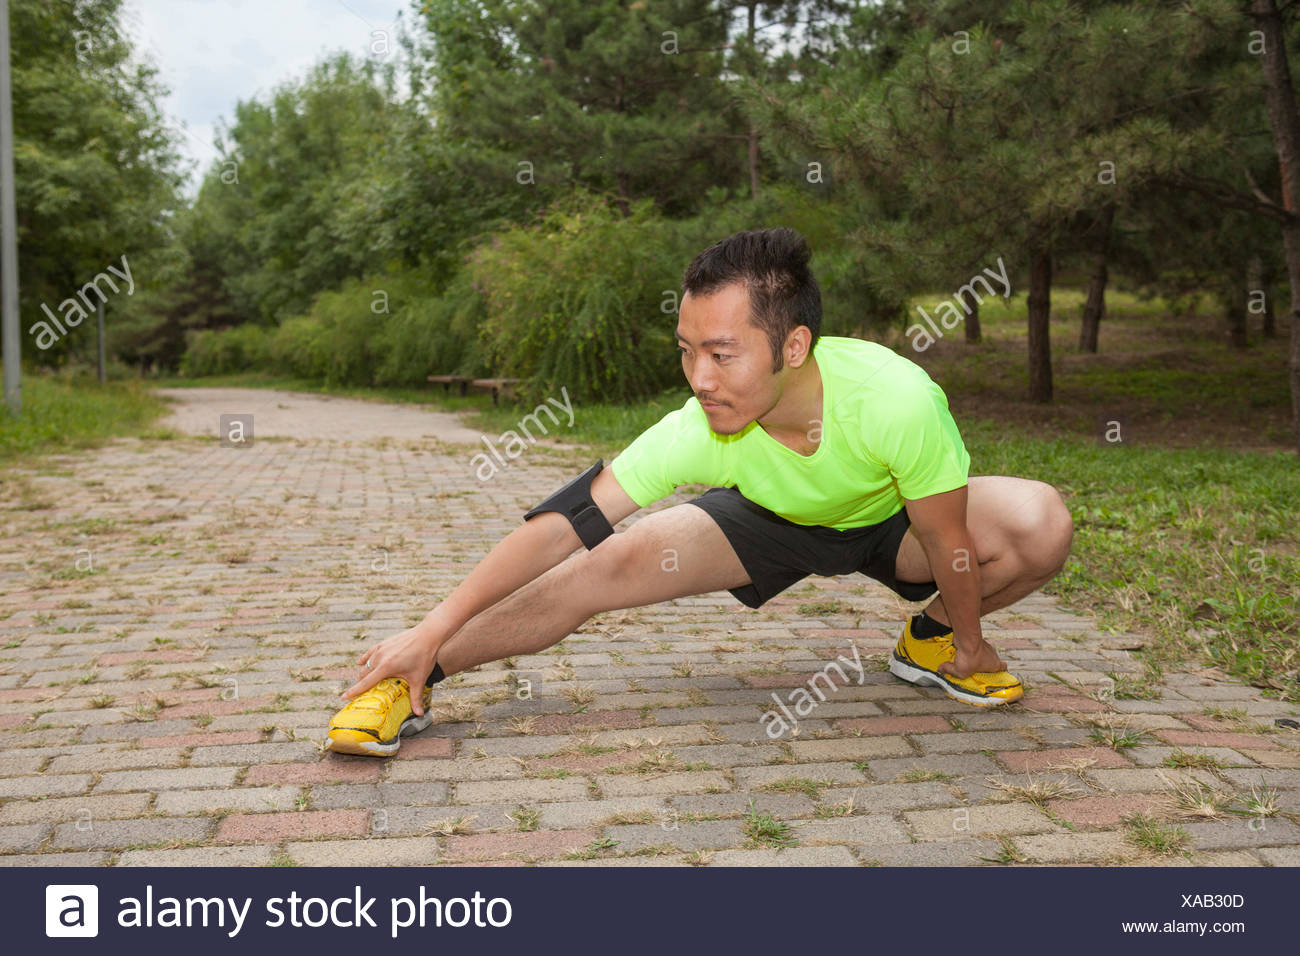 Young male runner crouching and stretching in park - Stock Image